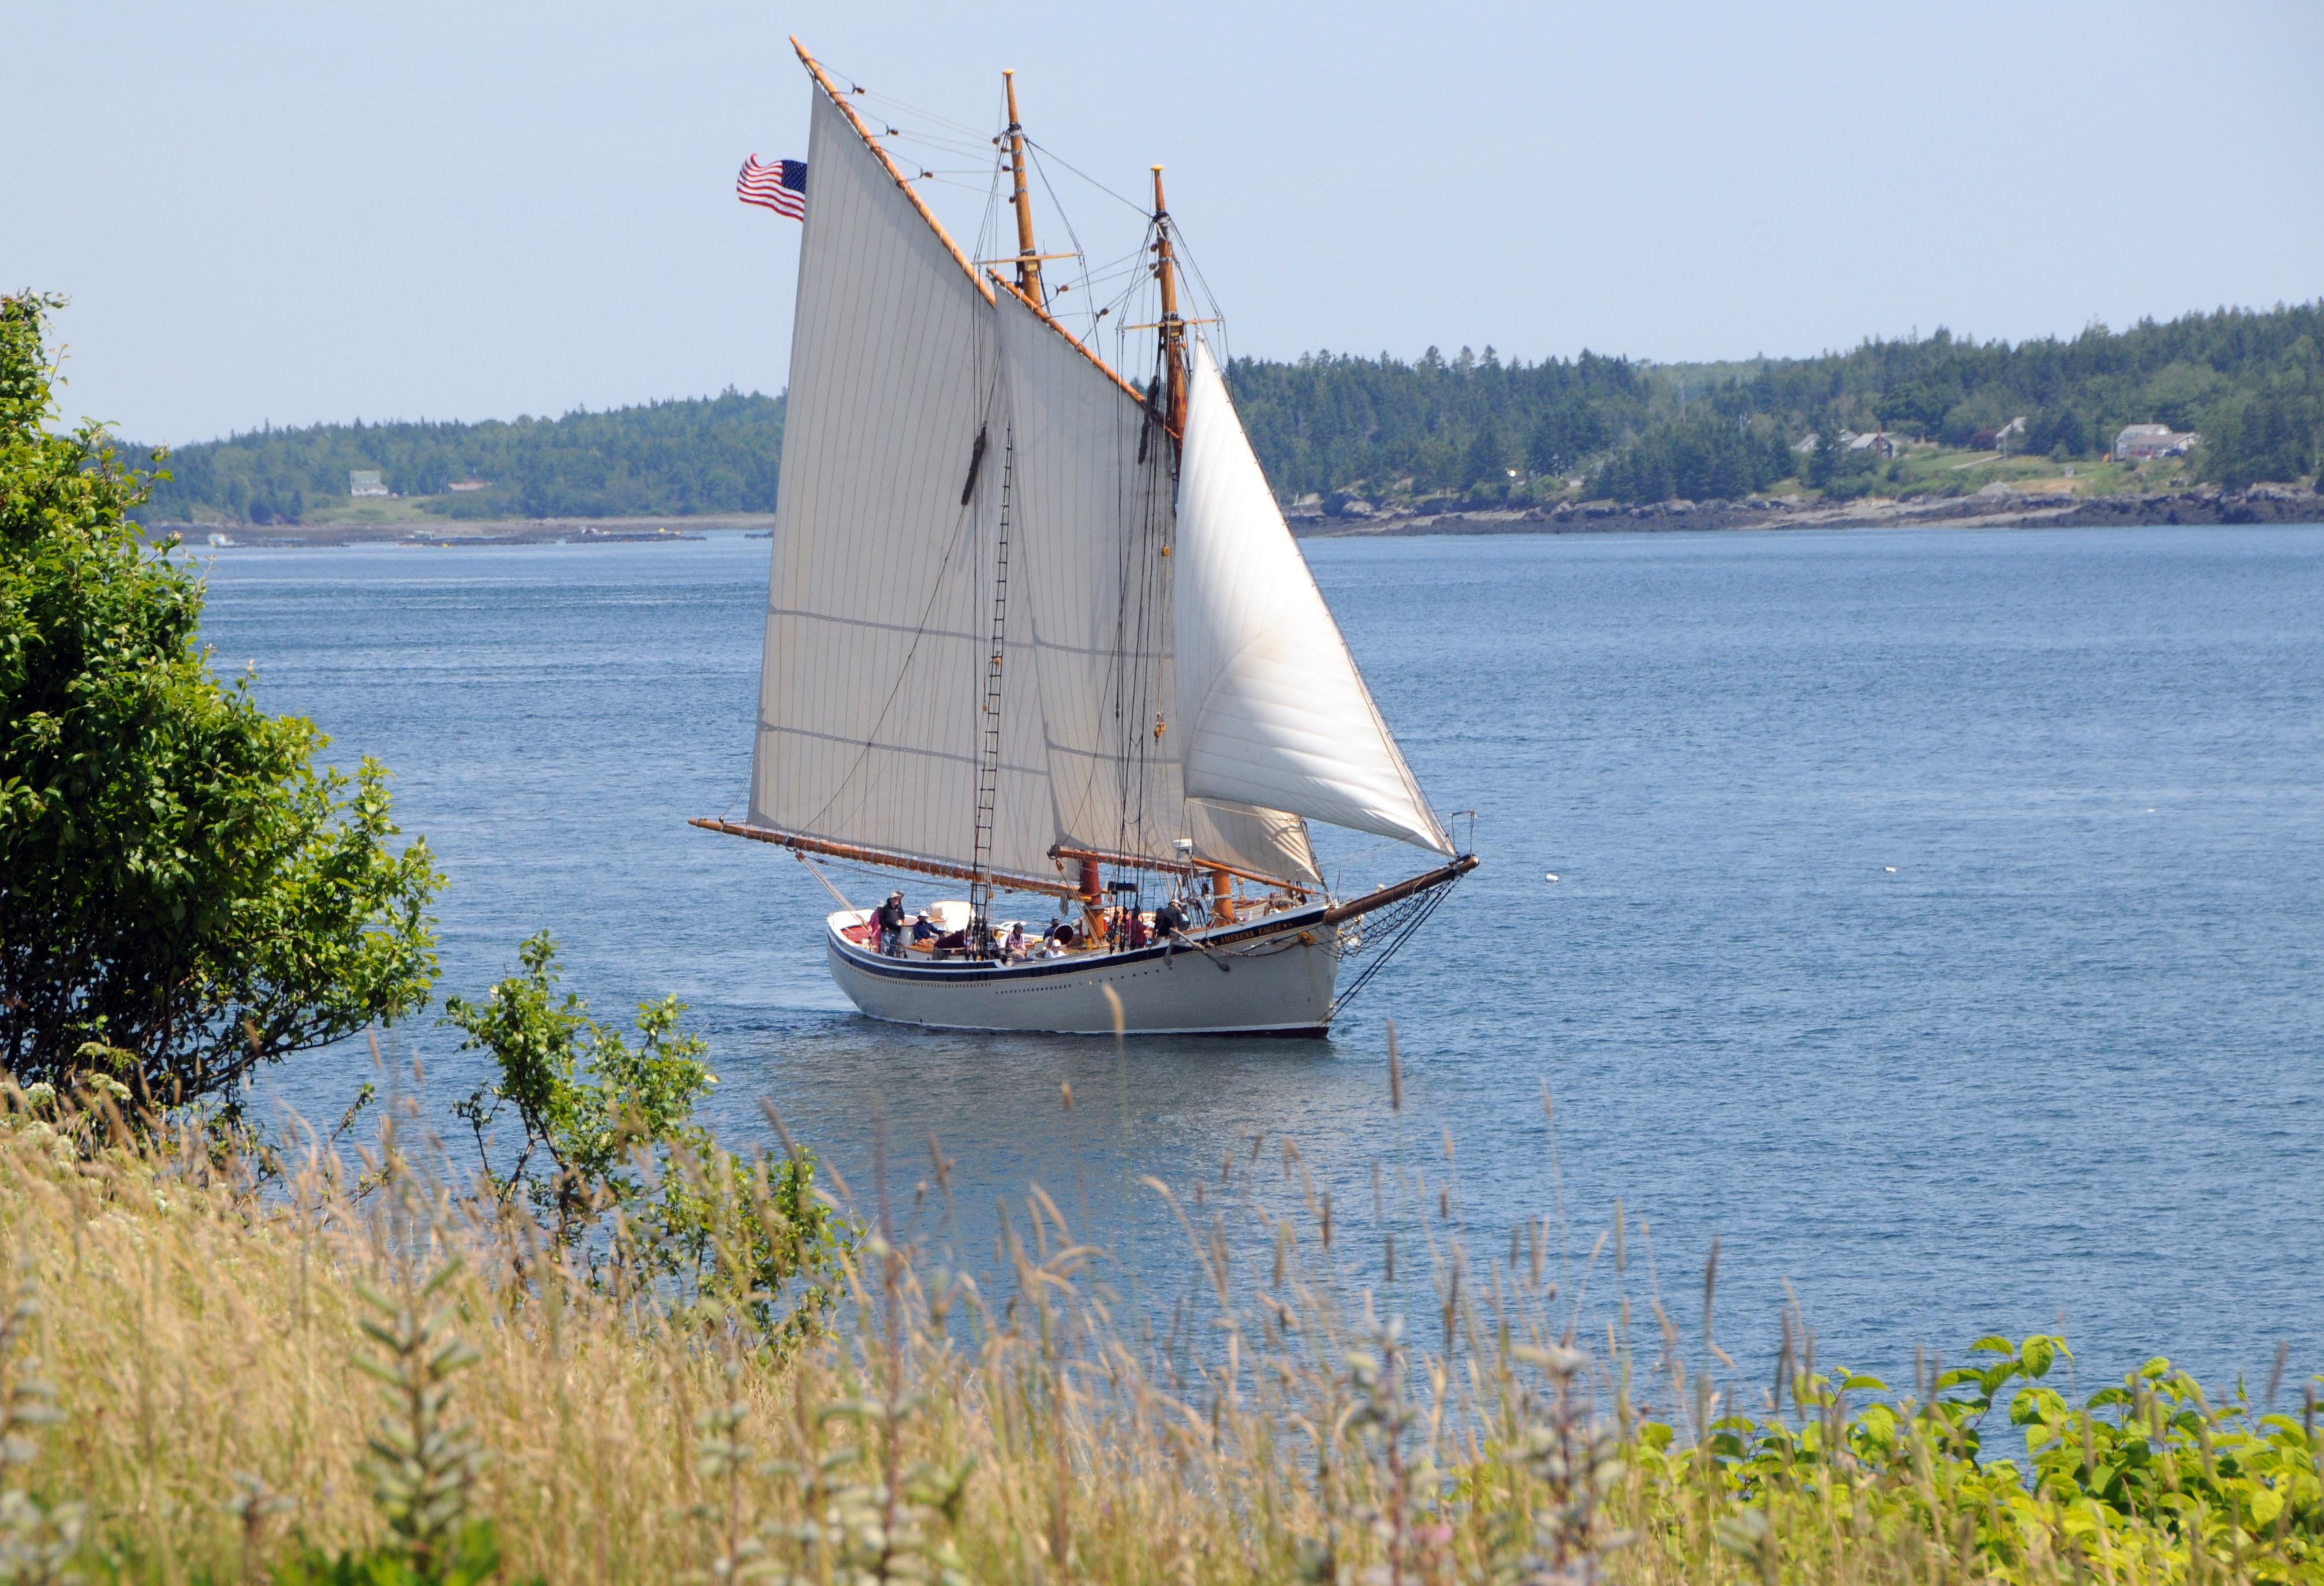 Yachting in Passamaquoddy Bay